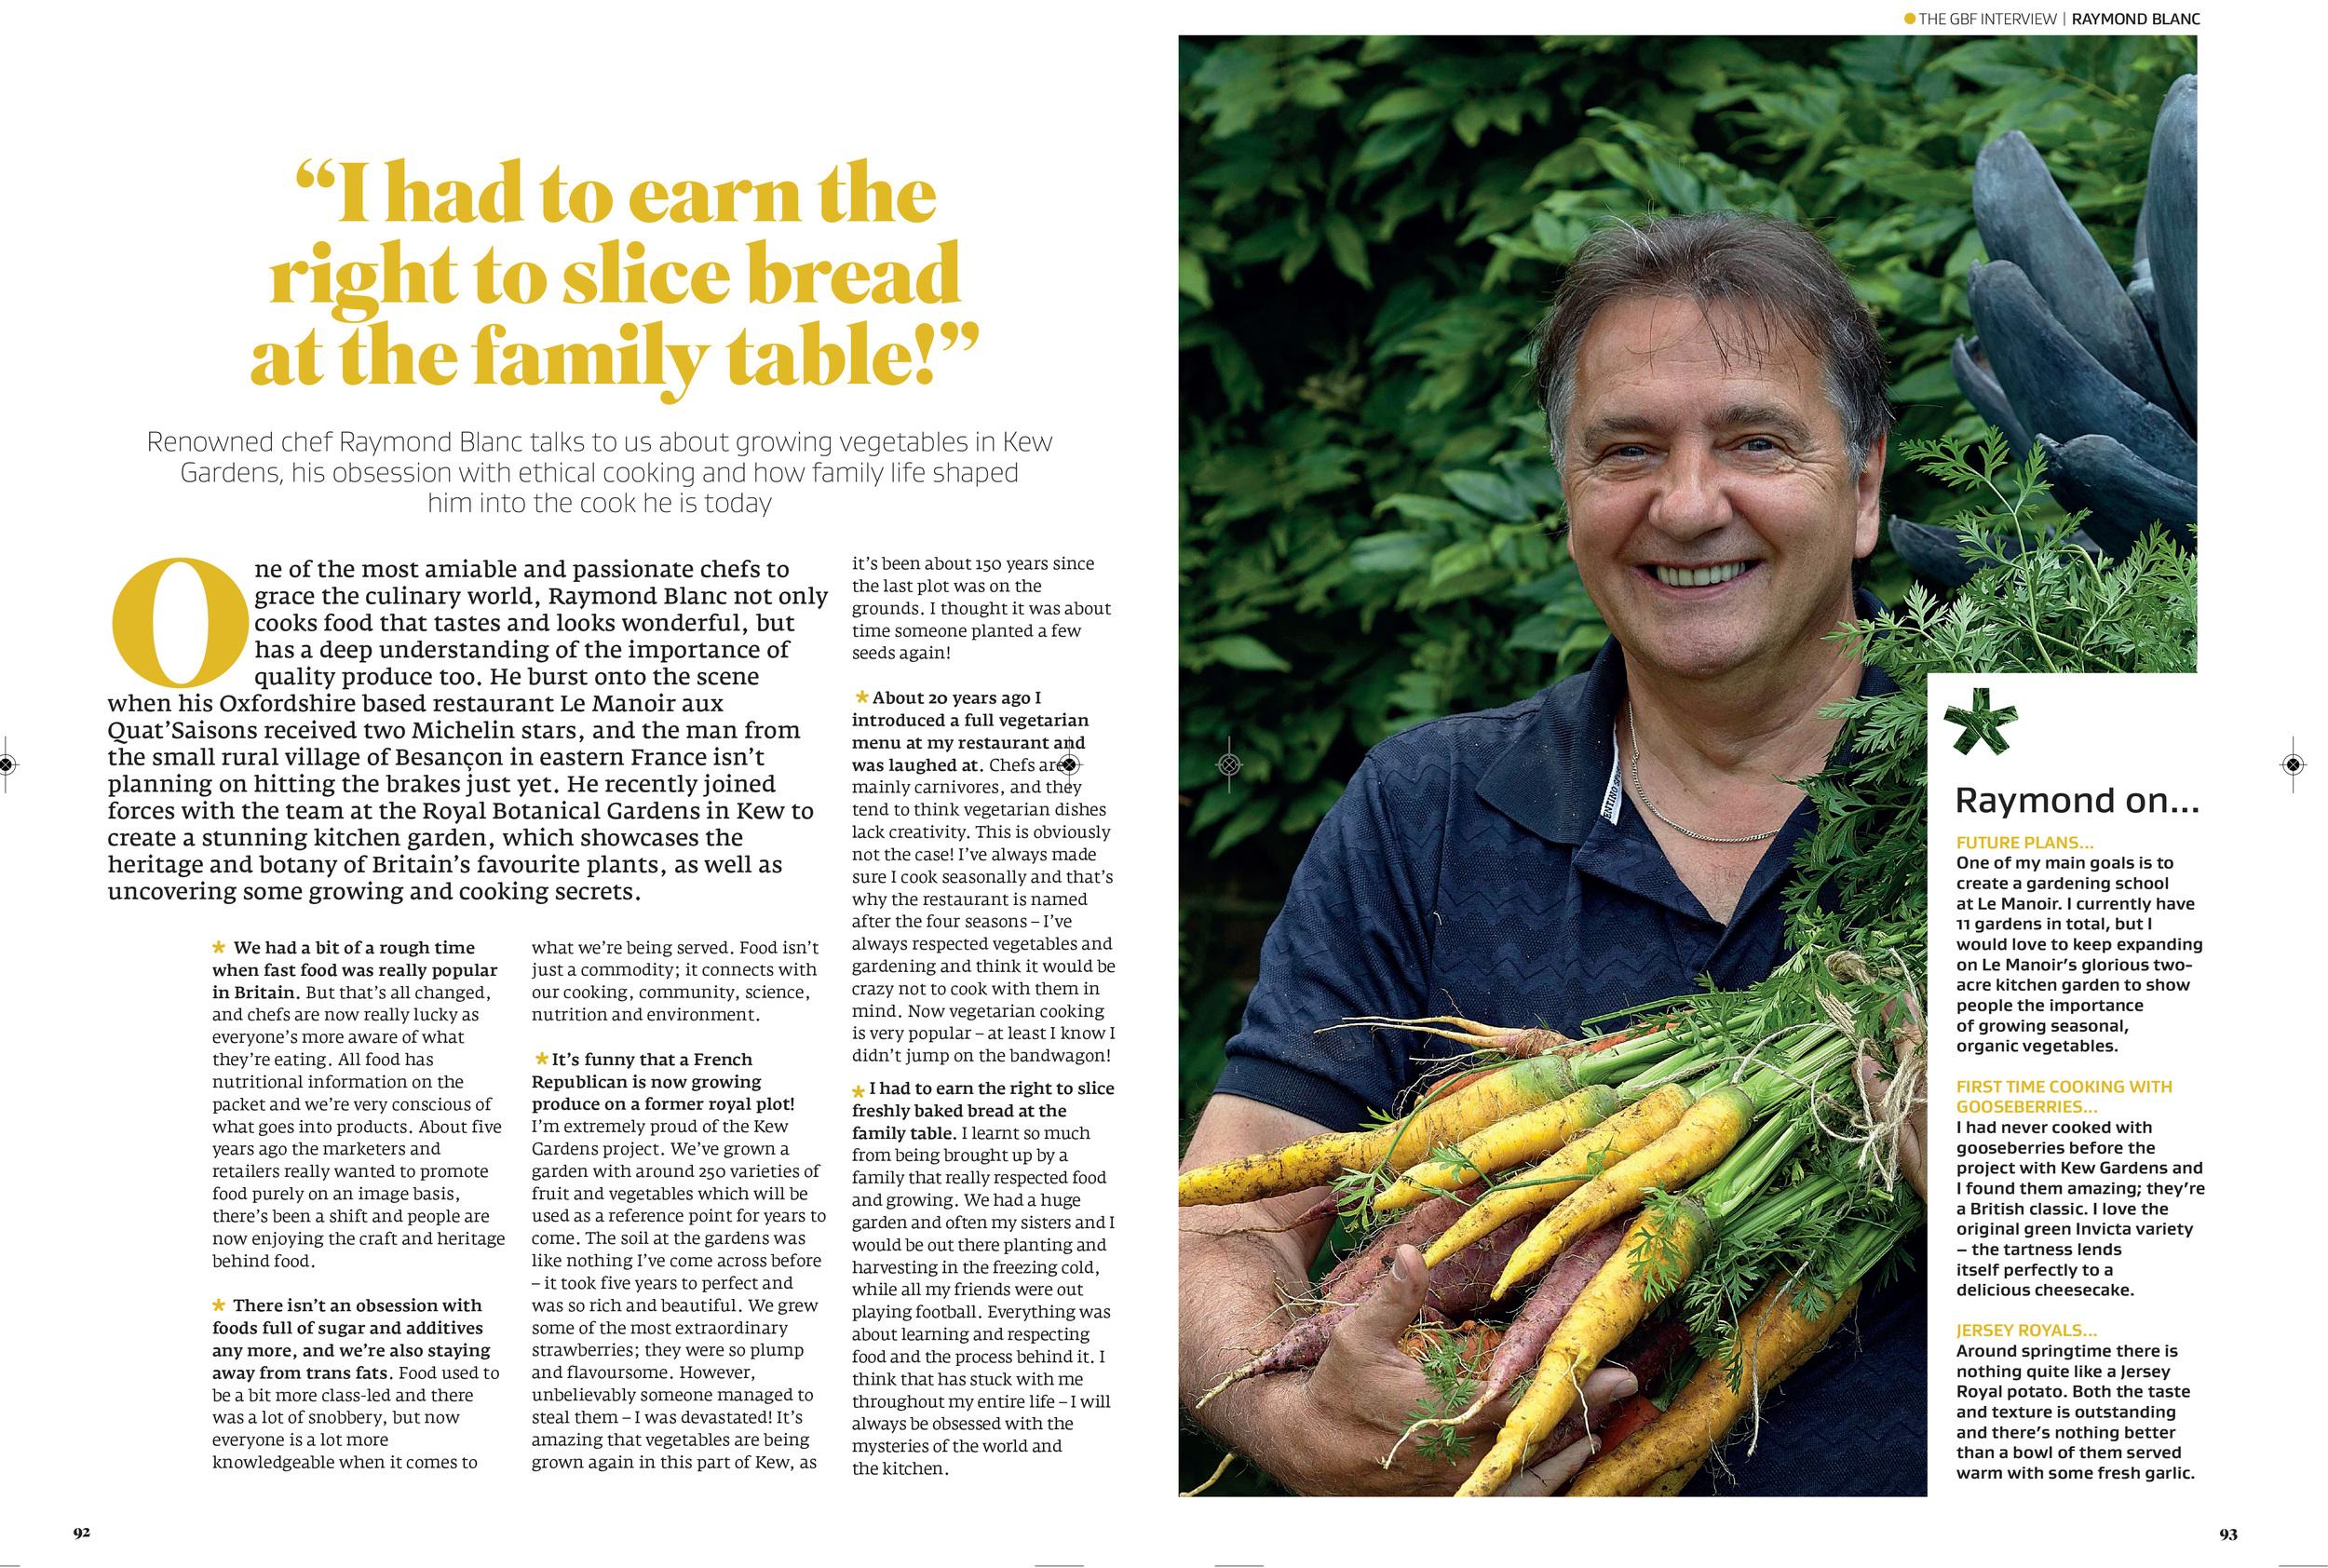 Interview with Raymond Blanc in Great British Food